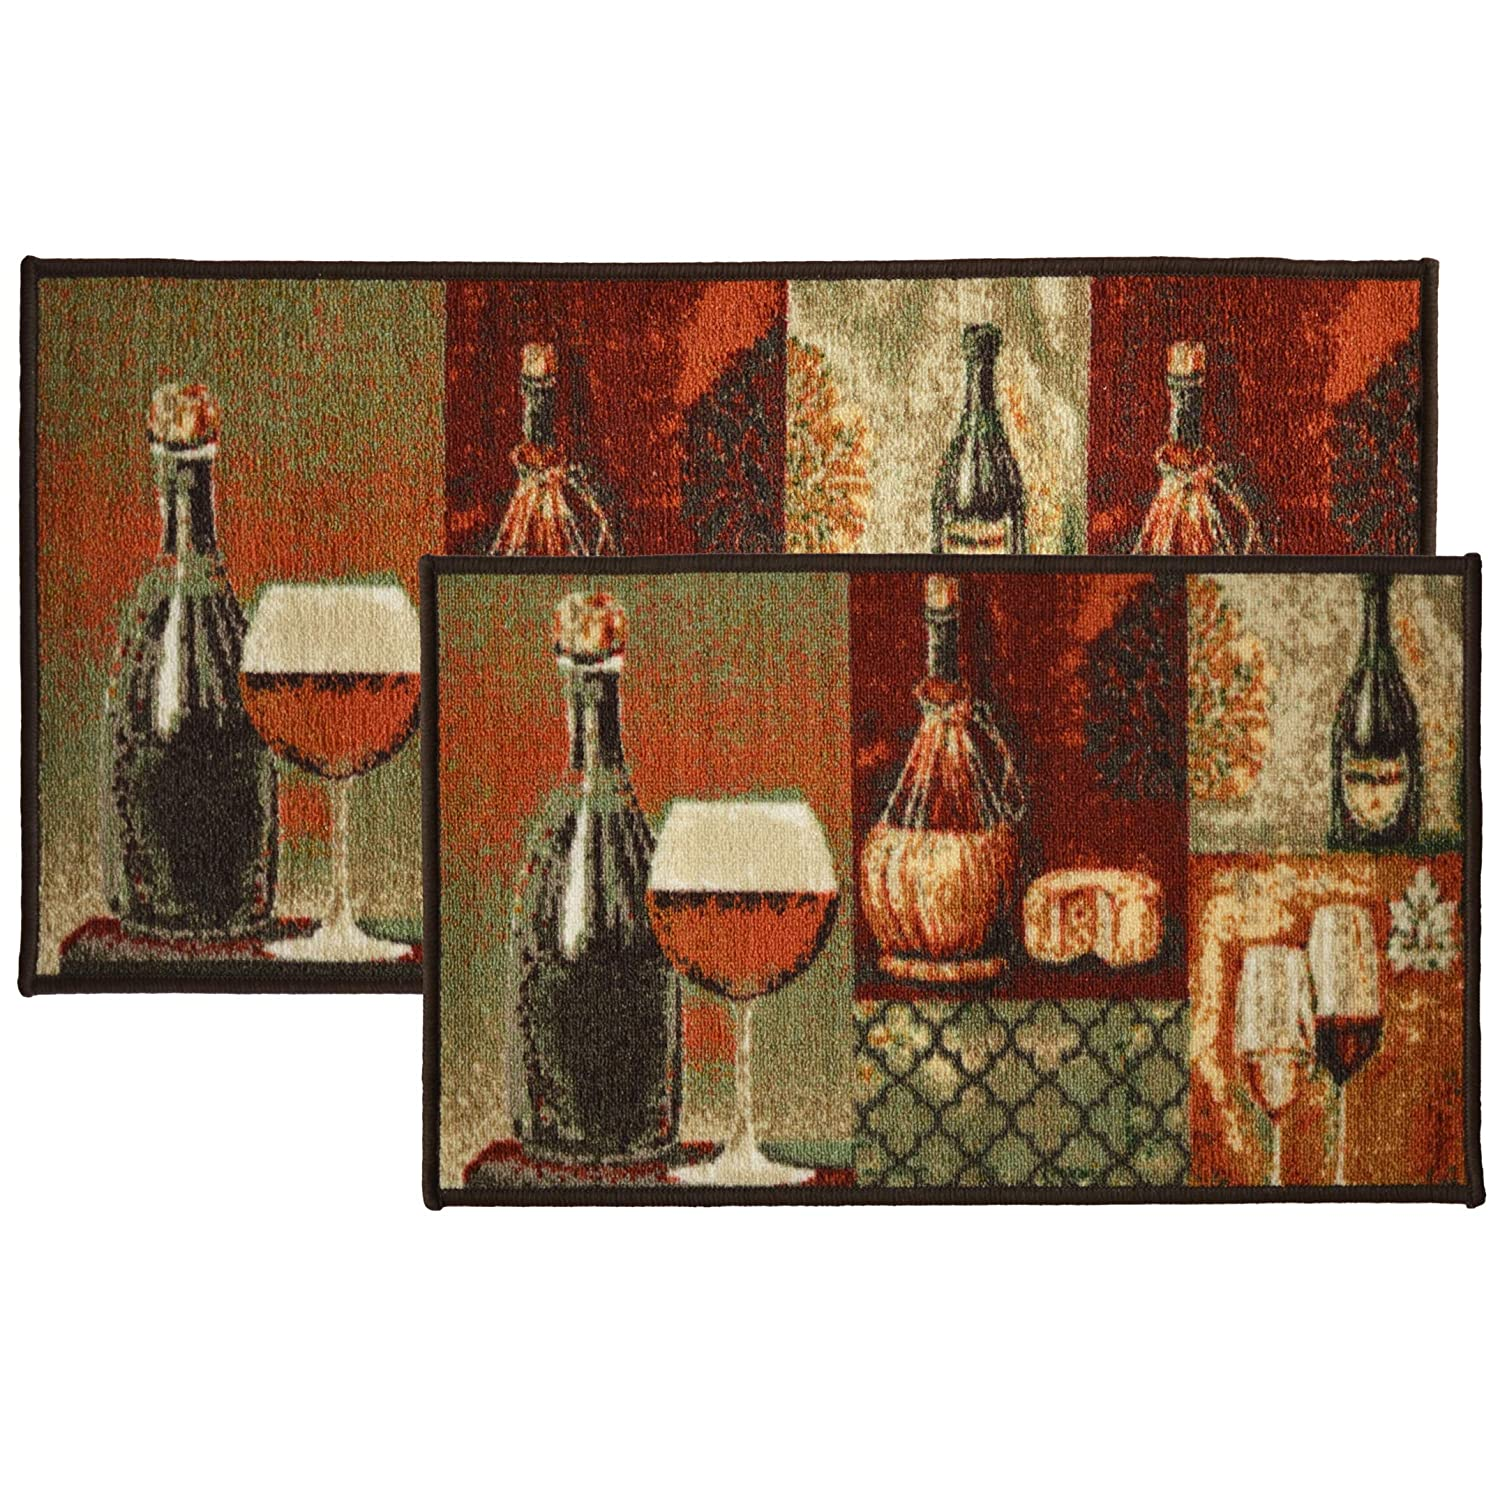 Kashi Home 2pc Cheese and Wine Kitchen Rug Set, Area Rug, Mat, Carpet, Non-Skid Latex Back (18x30 Rectangle & 20x40)